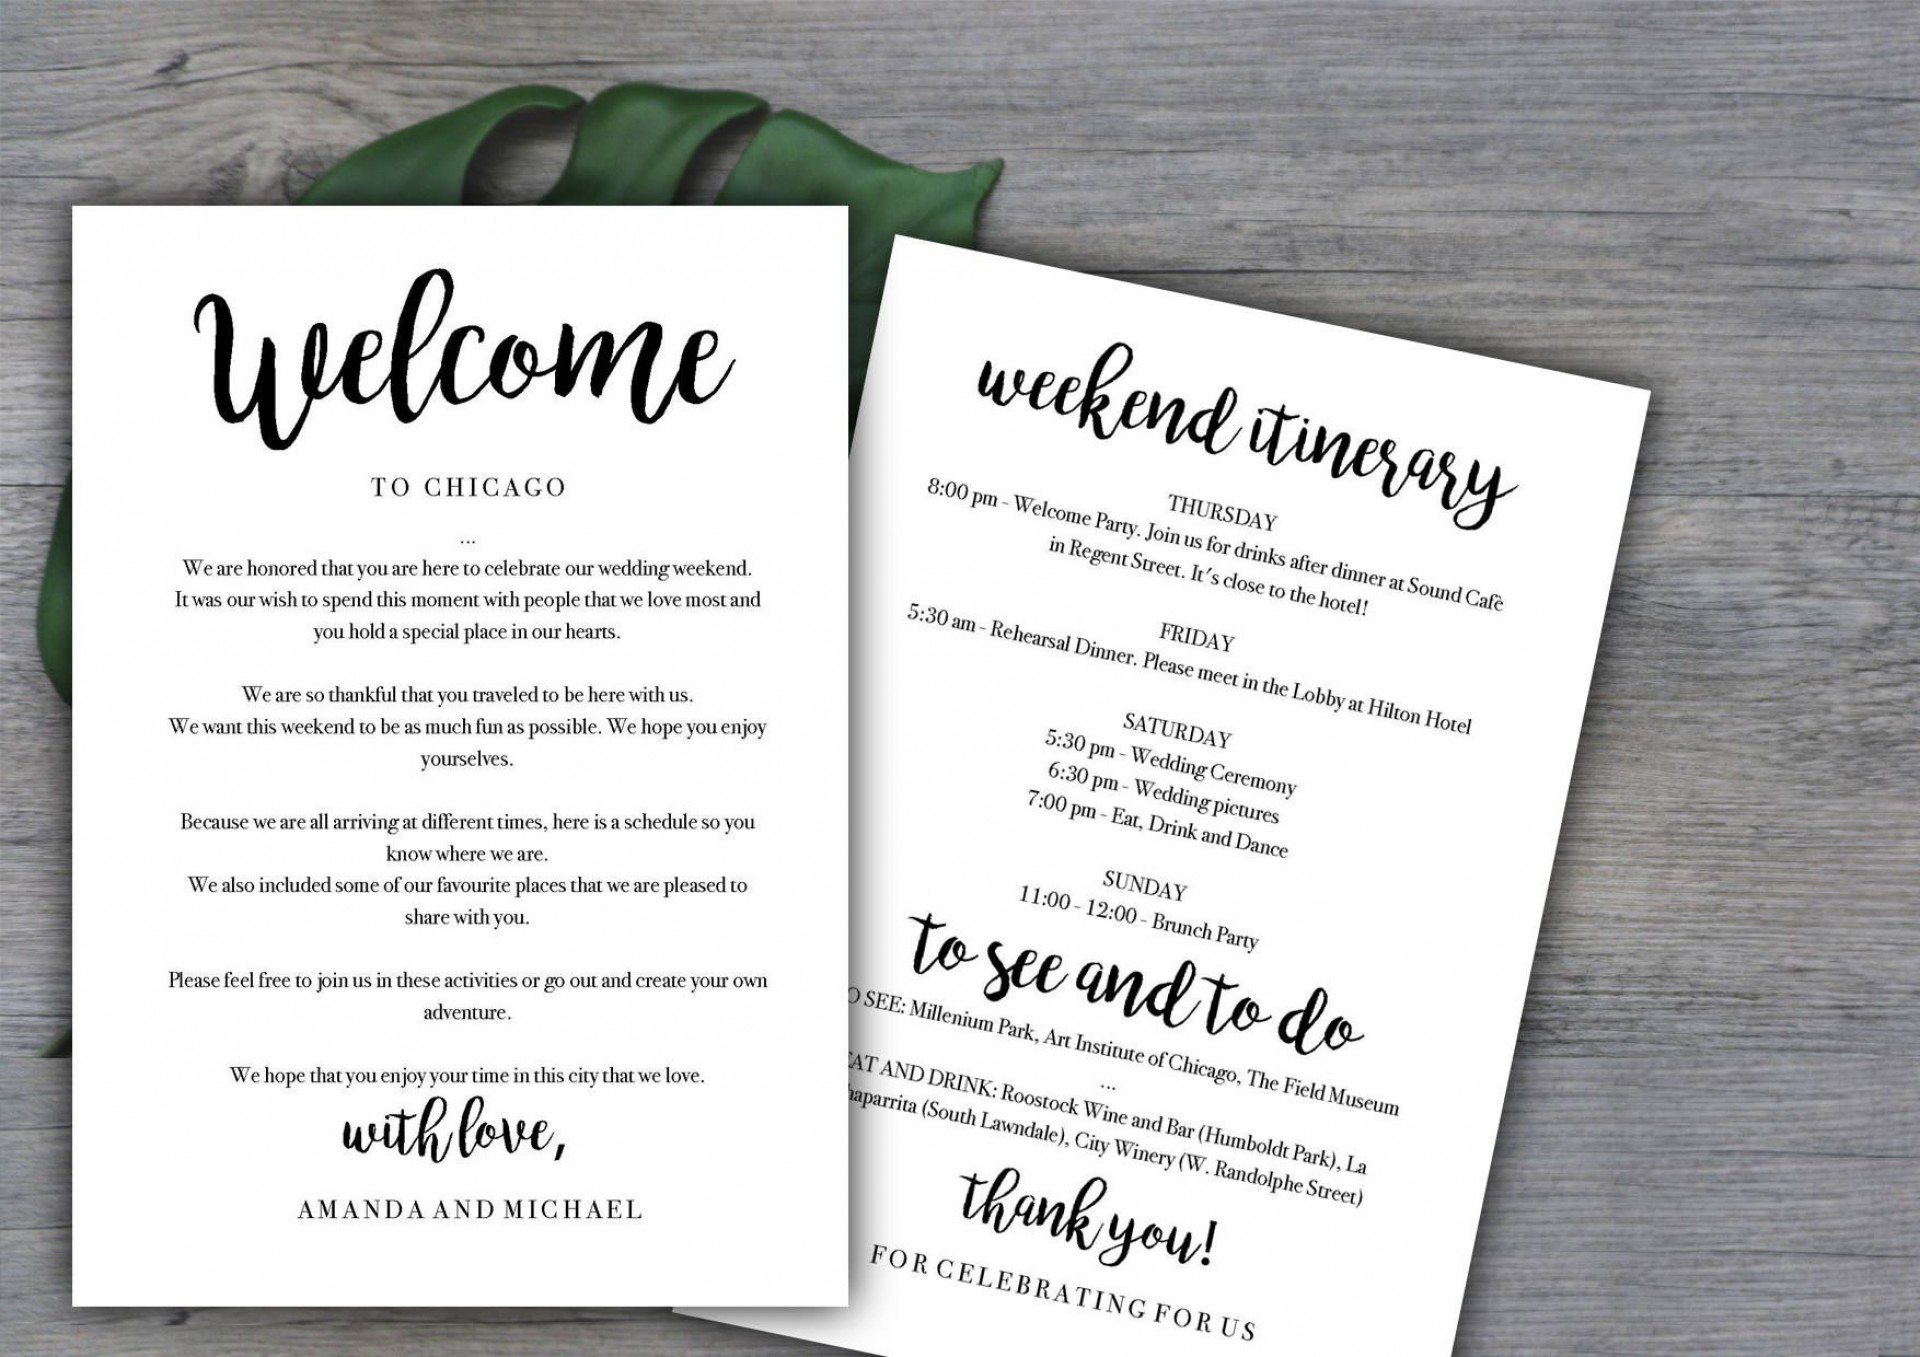 005 Unusual Destination Wedding Welcome Letter Template Highest Quality  And Itinerary1920